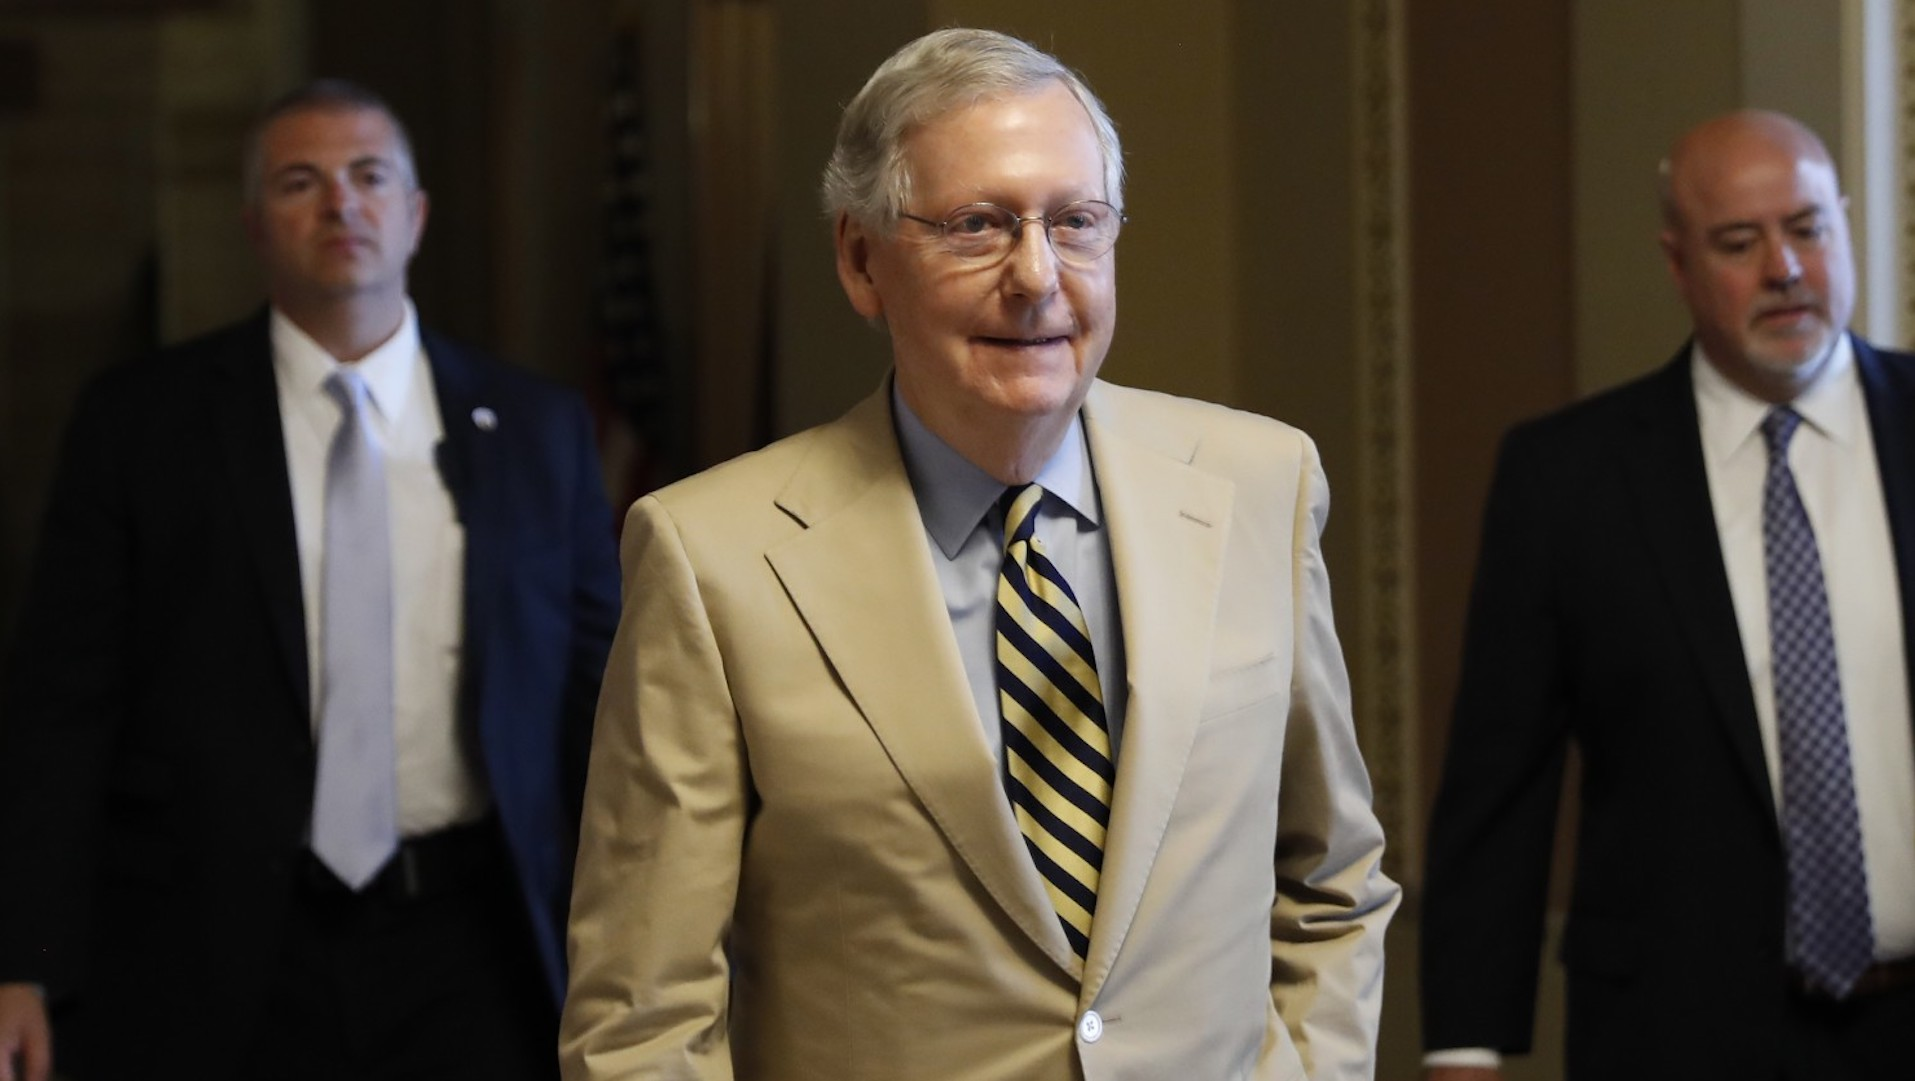 Senate Republicans set to release health-care bill, but divisions remain